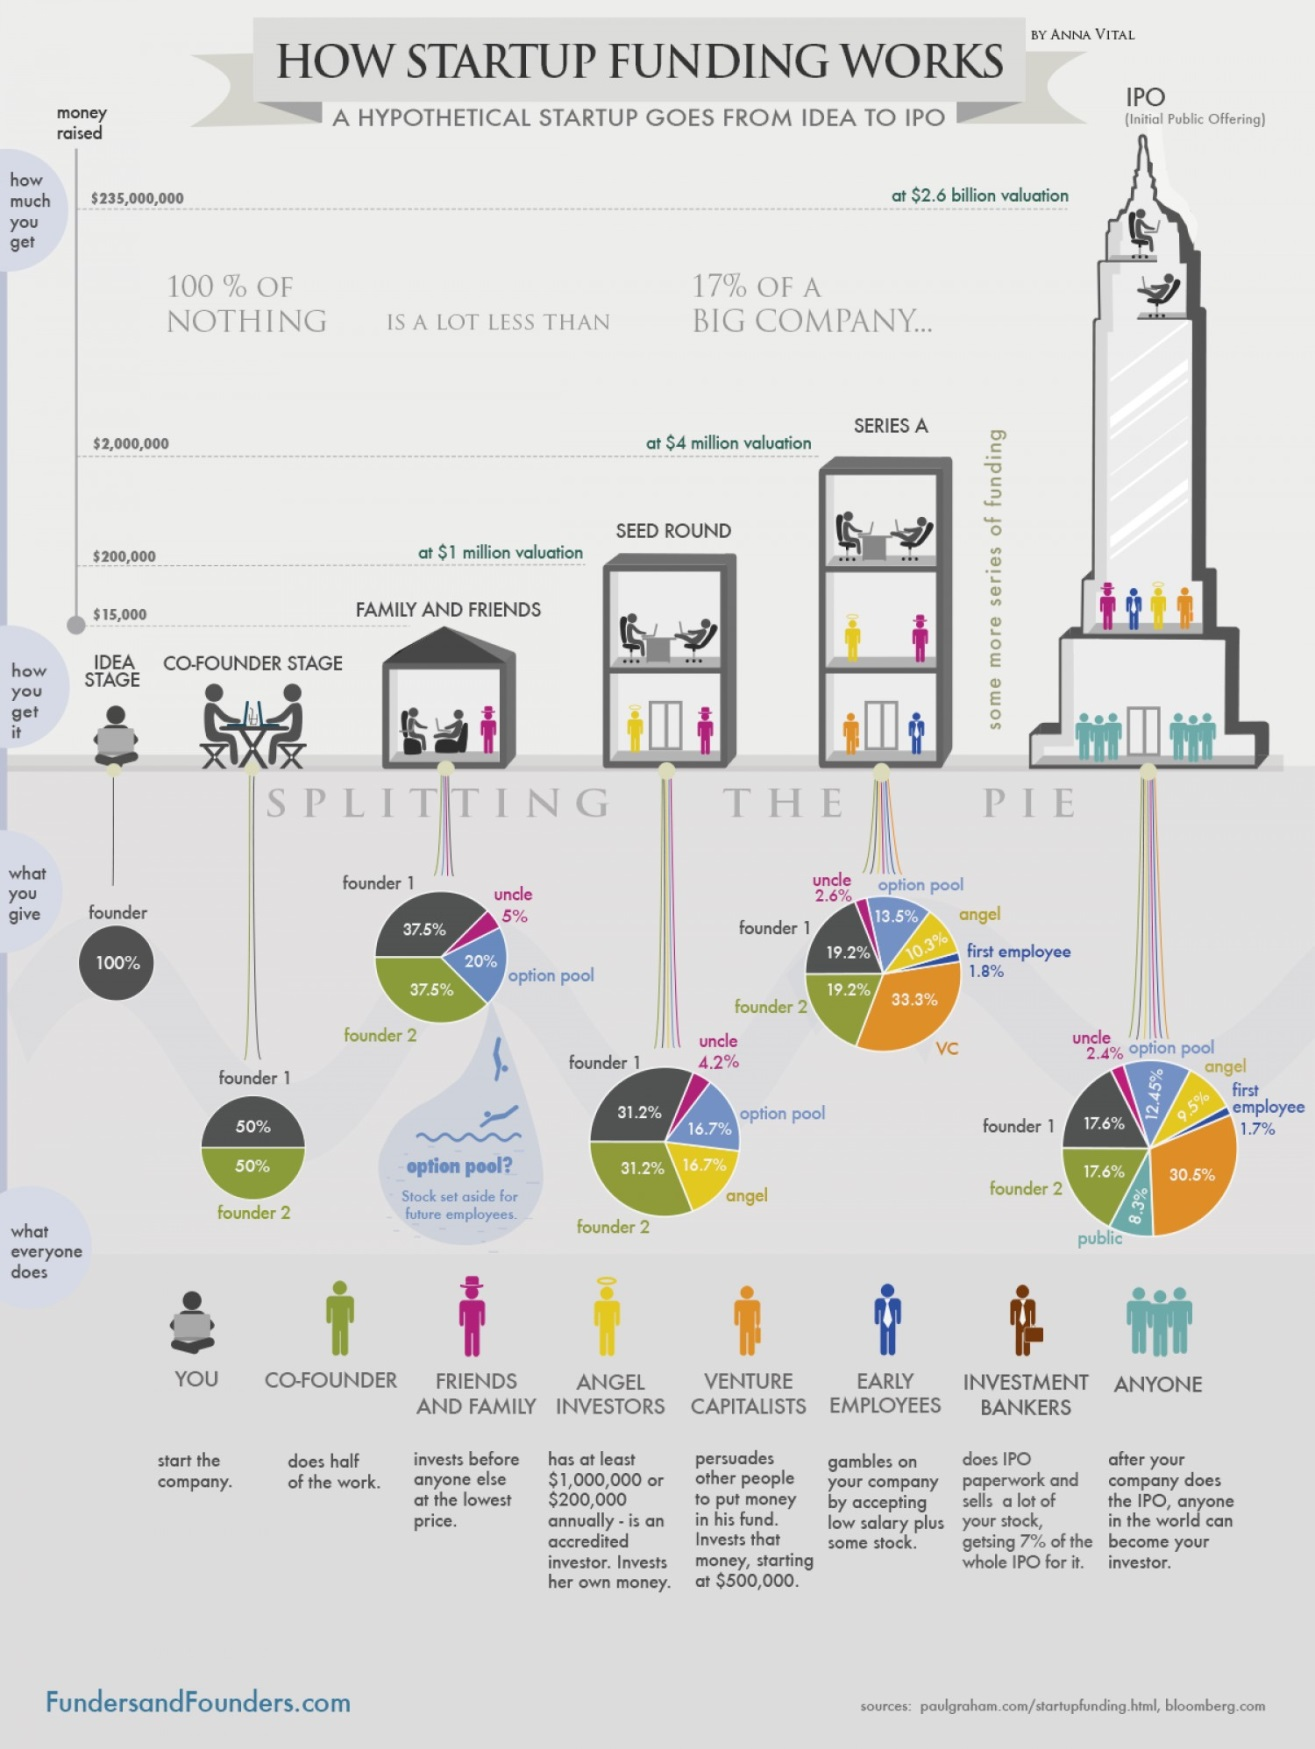 How Startup Funding Works